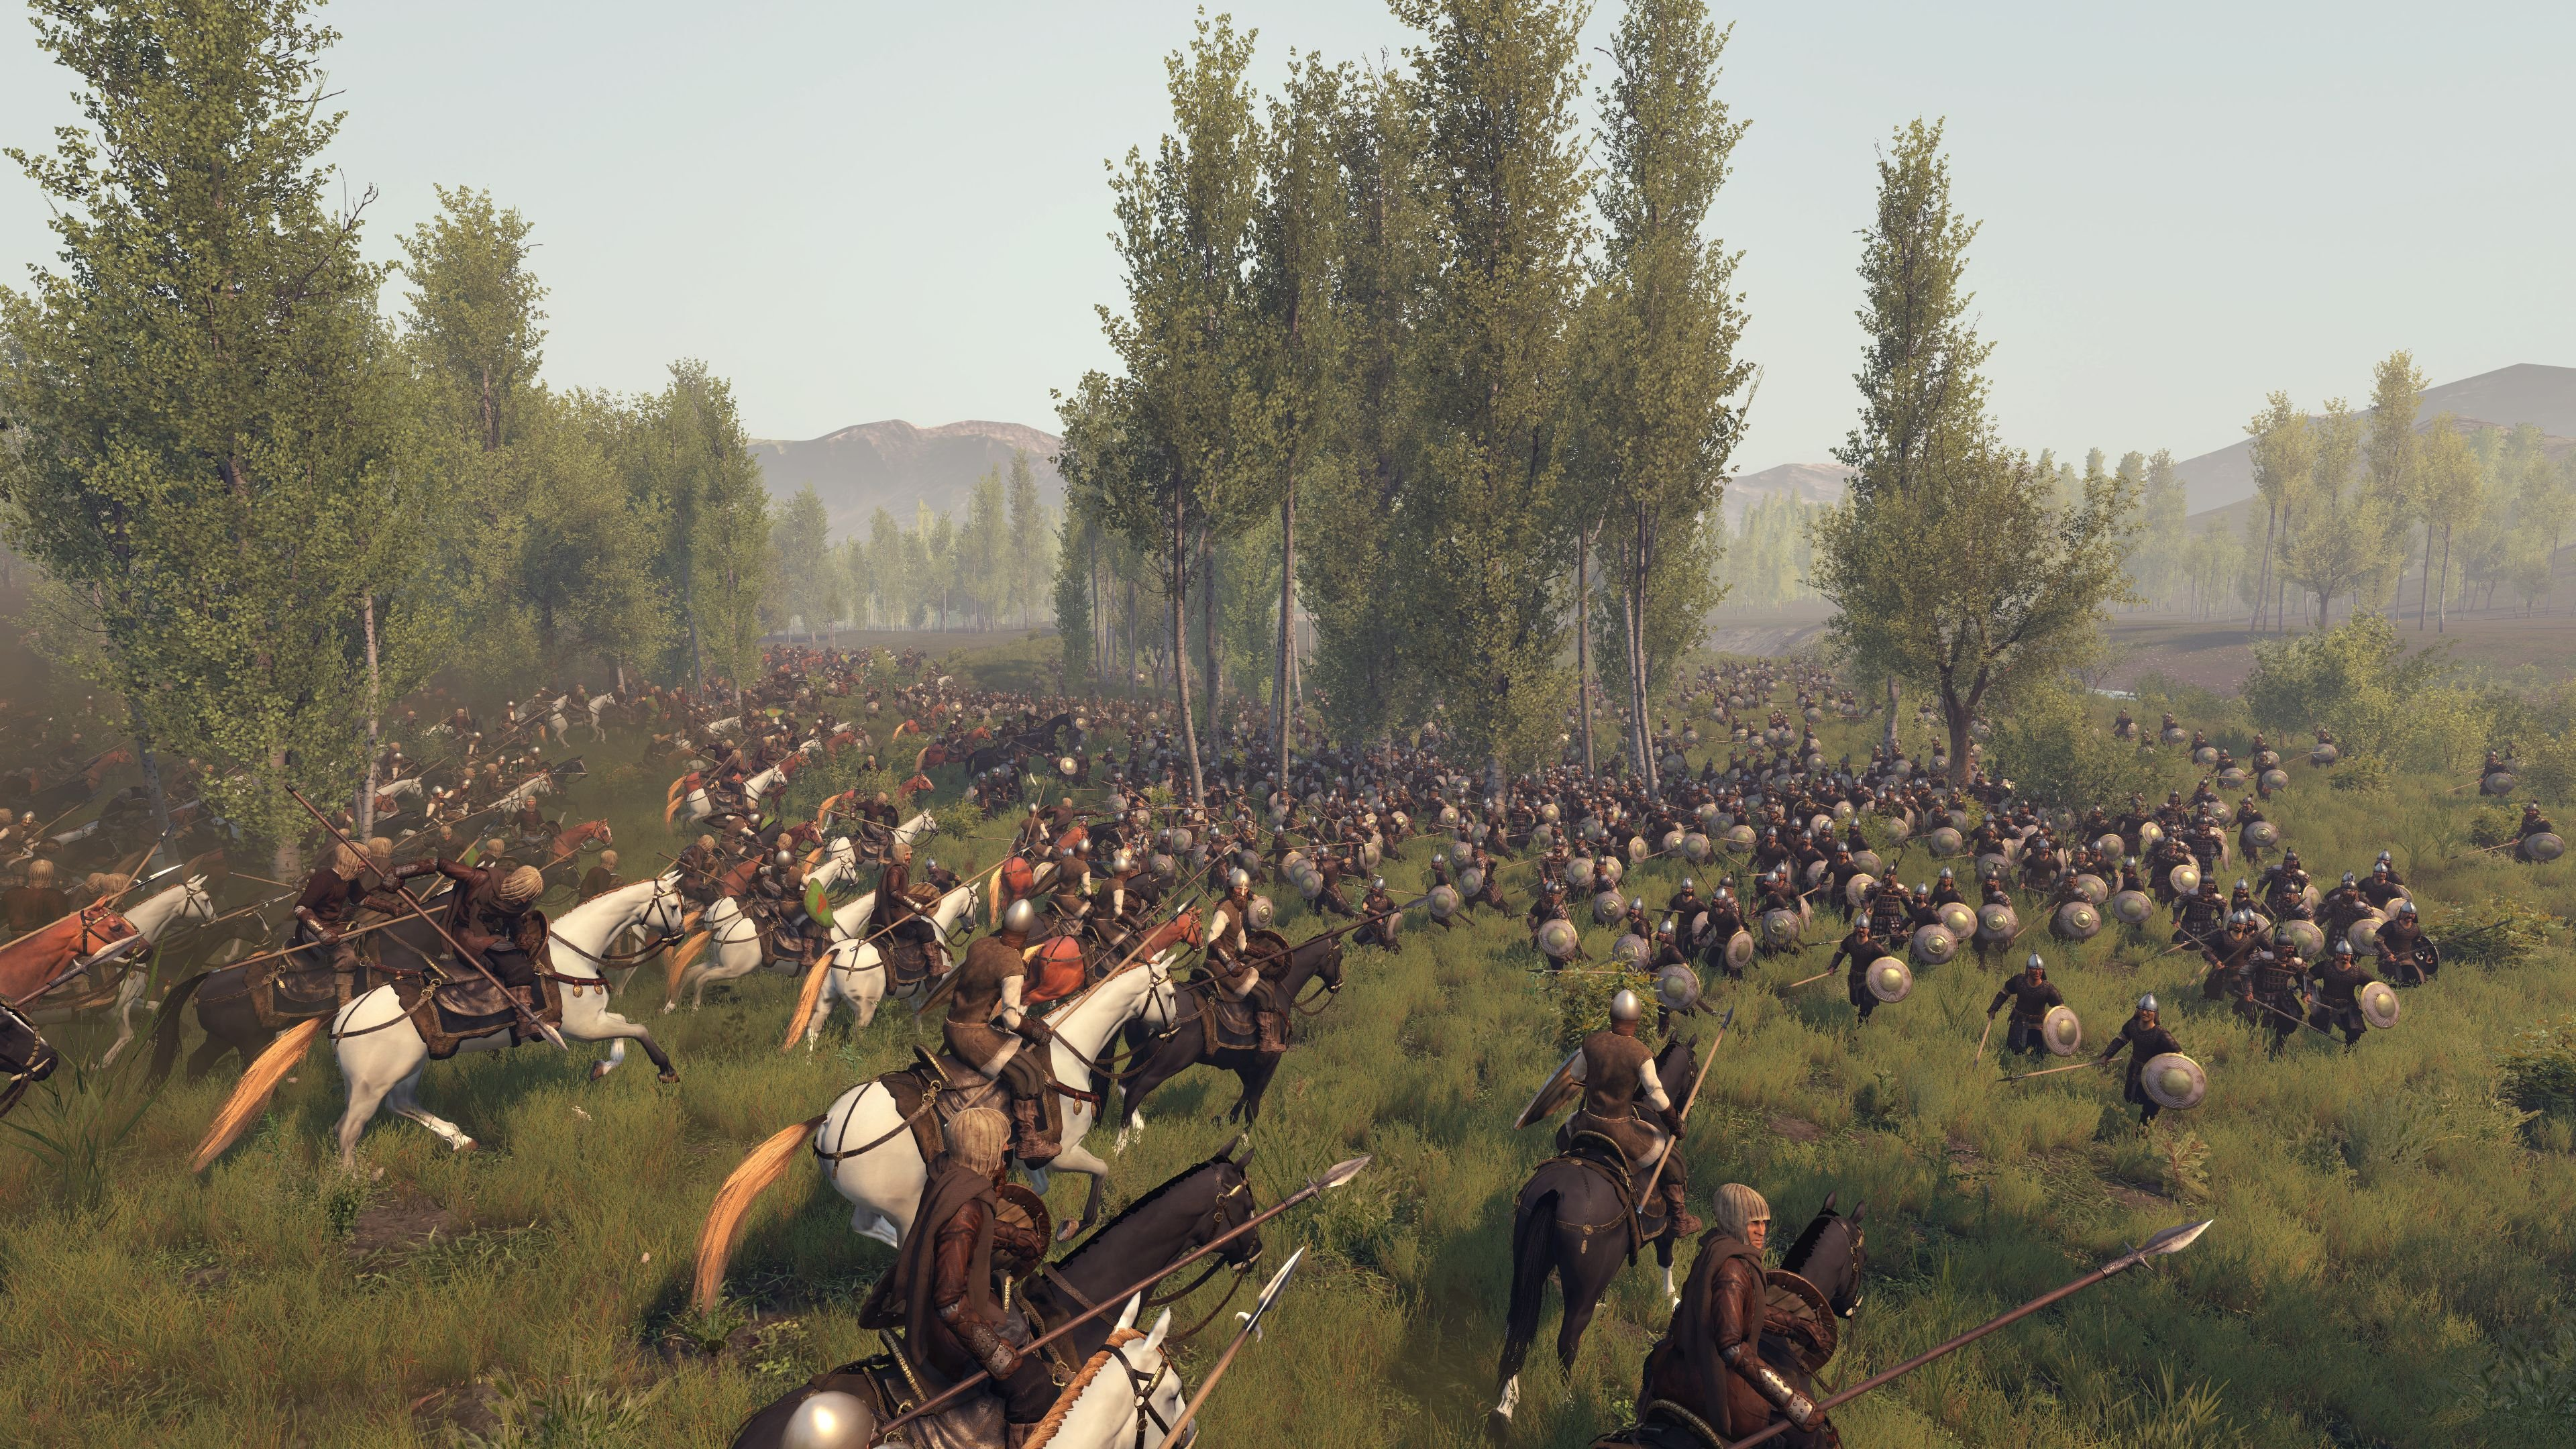 mount-and-blade-ii-bannerlord-taleworlds-entertainment-medieval-open-world-rpg-pc-steam